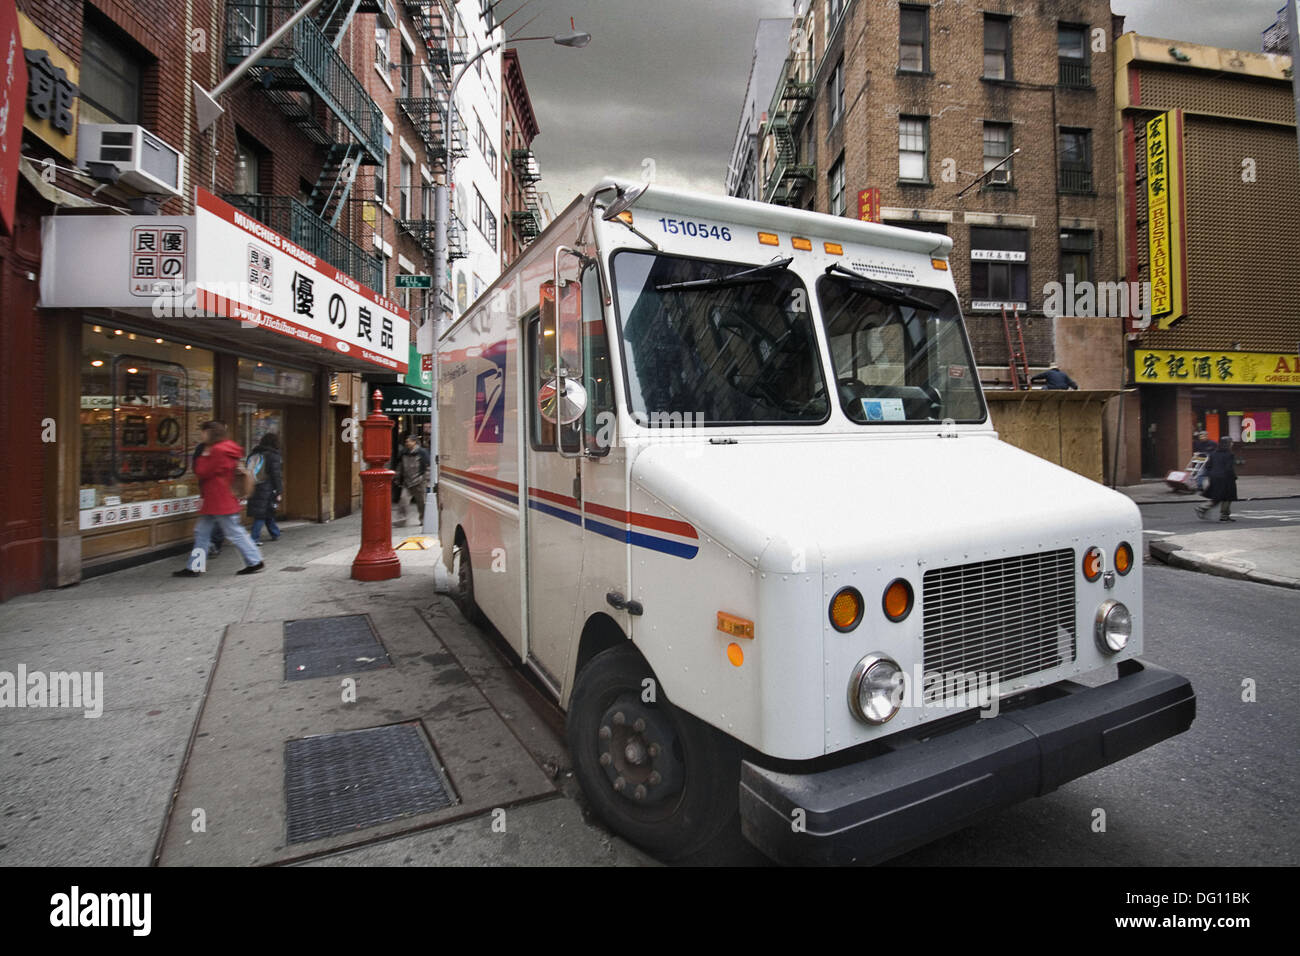 Postal service car in Chinatown, Manhattan, NYC, USA - Stock Image